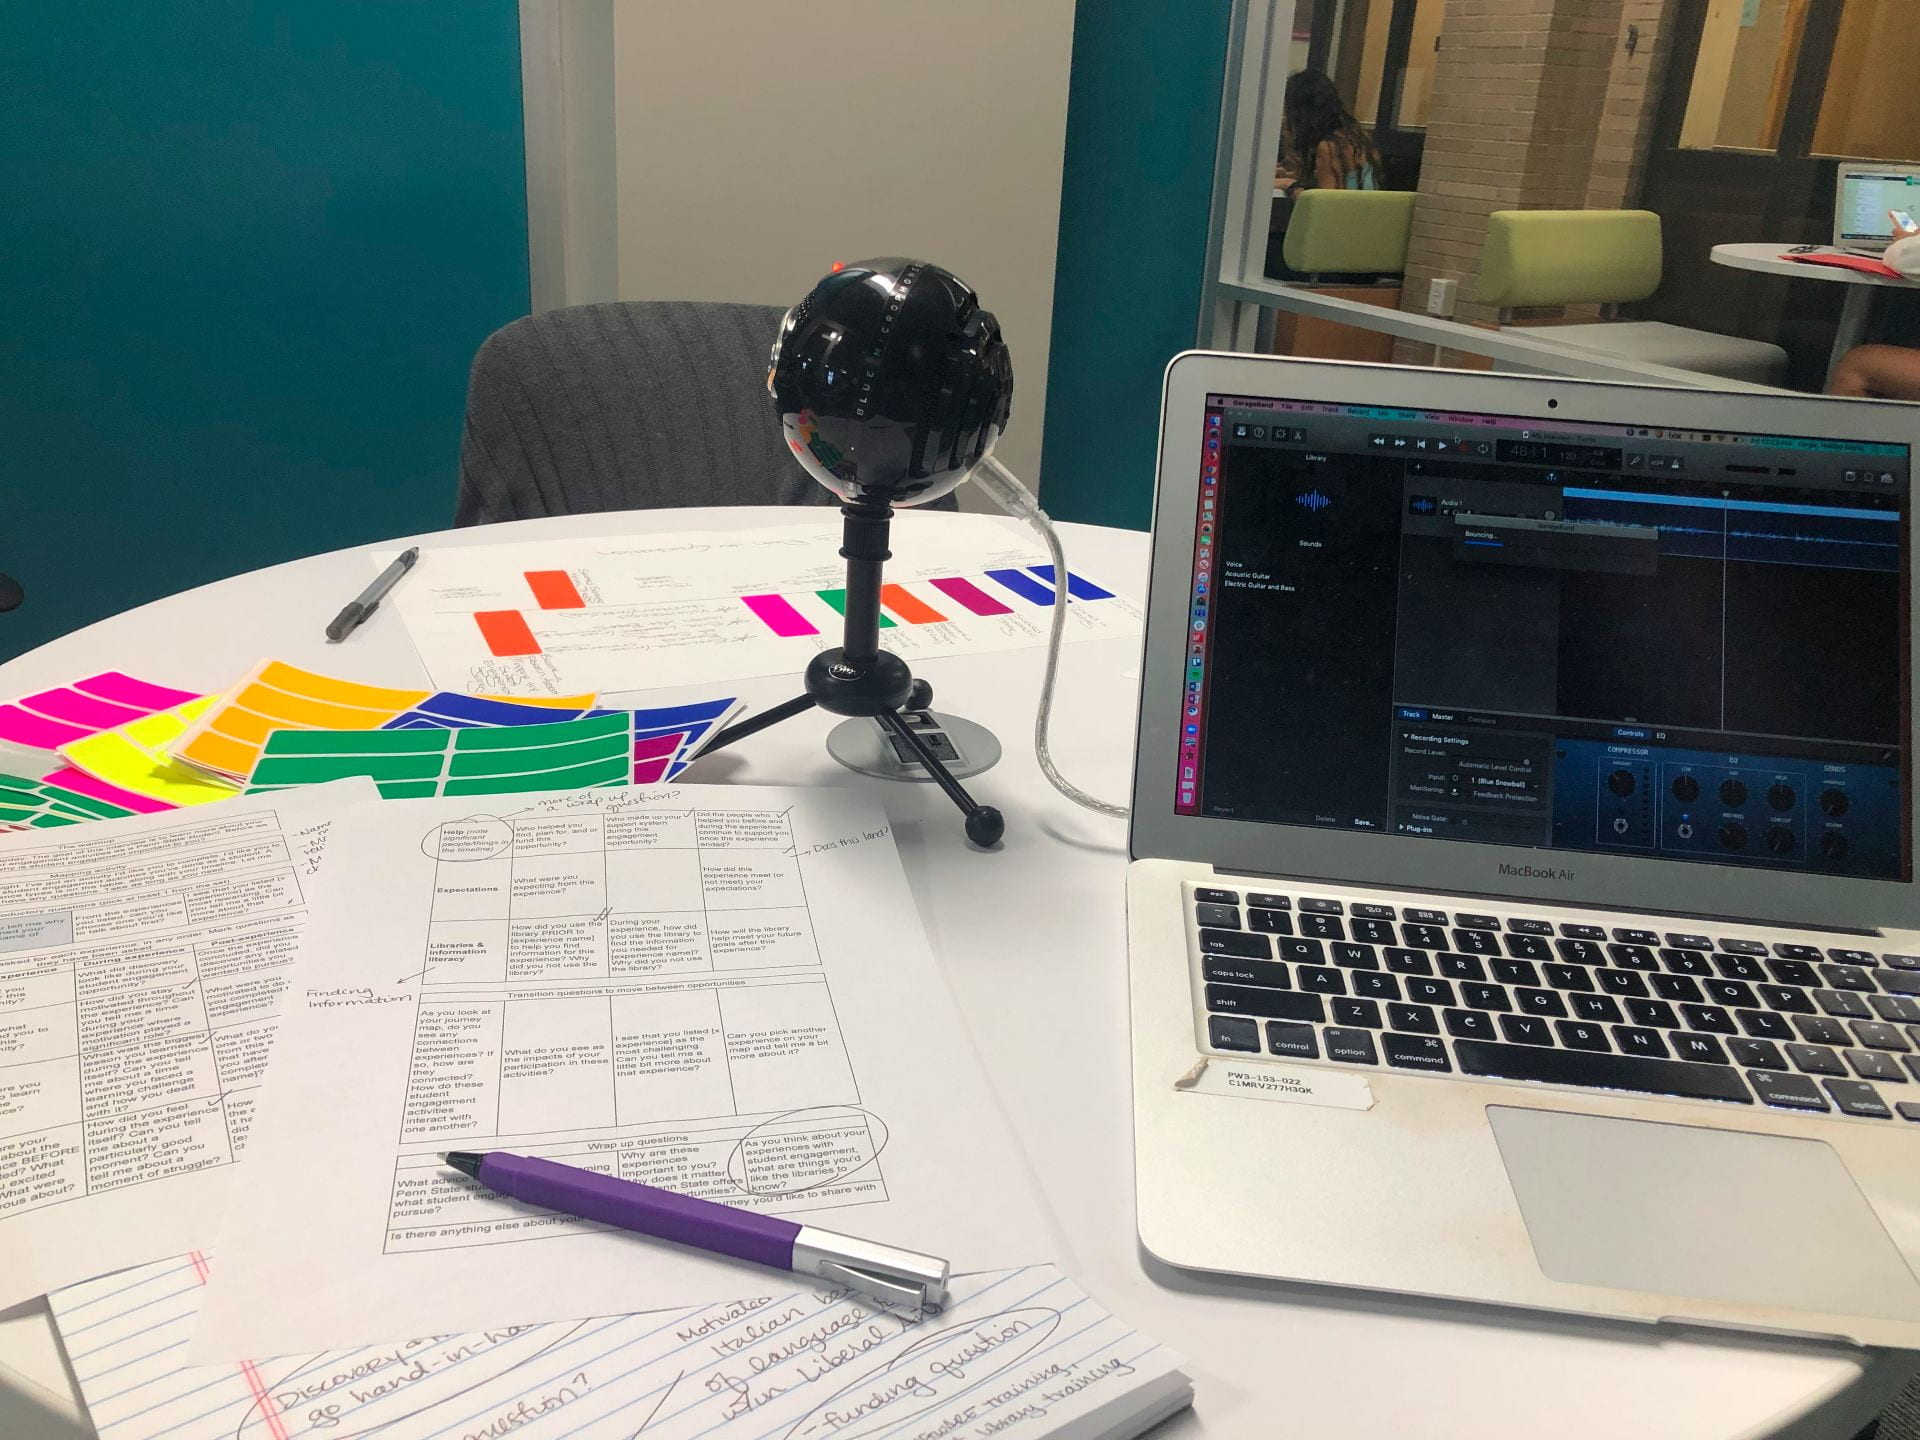 A picture of a table with a laptop, snowball microphone, and paper